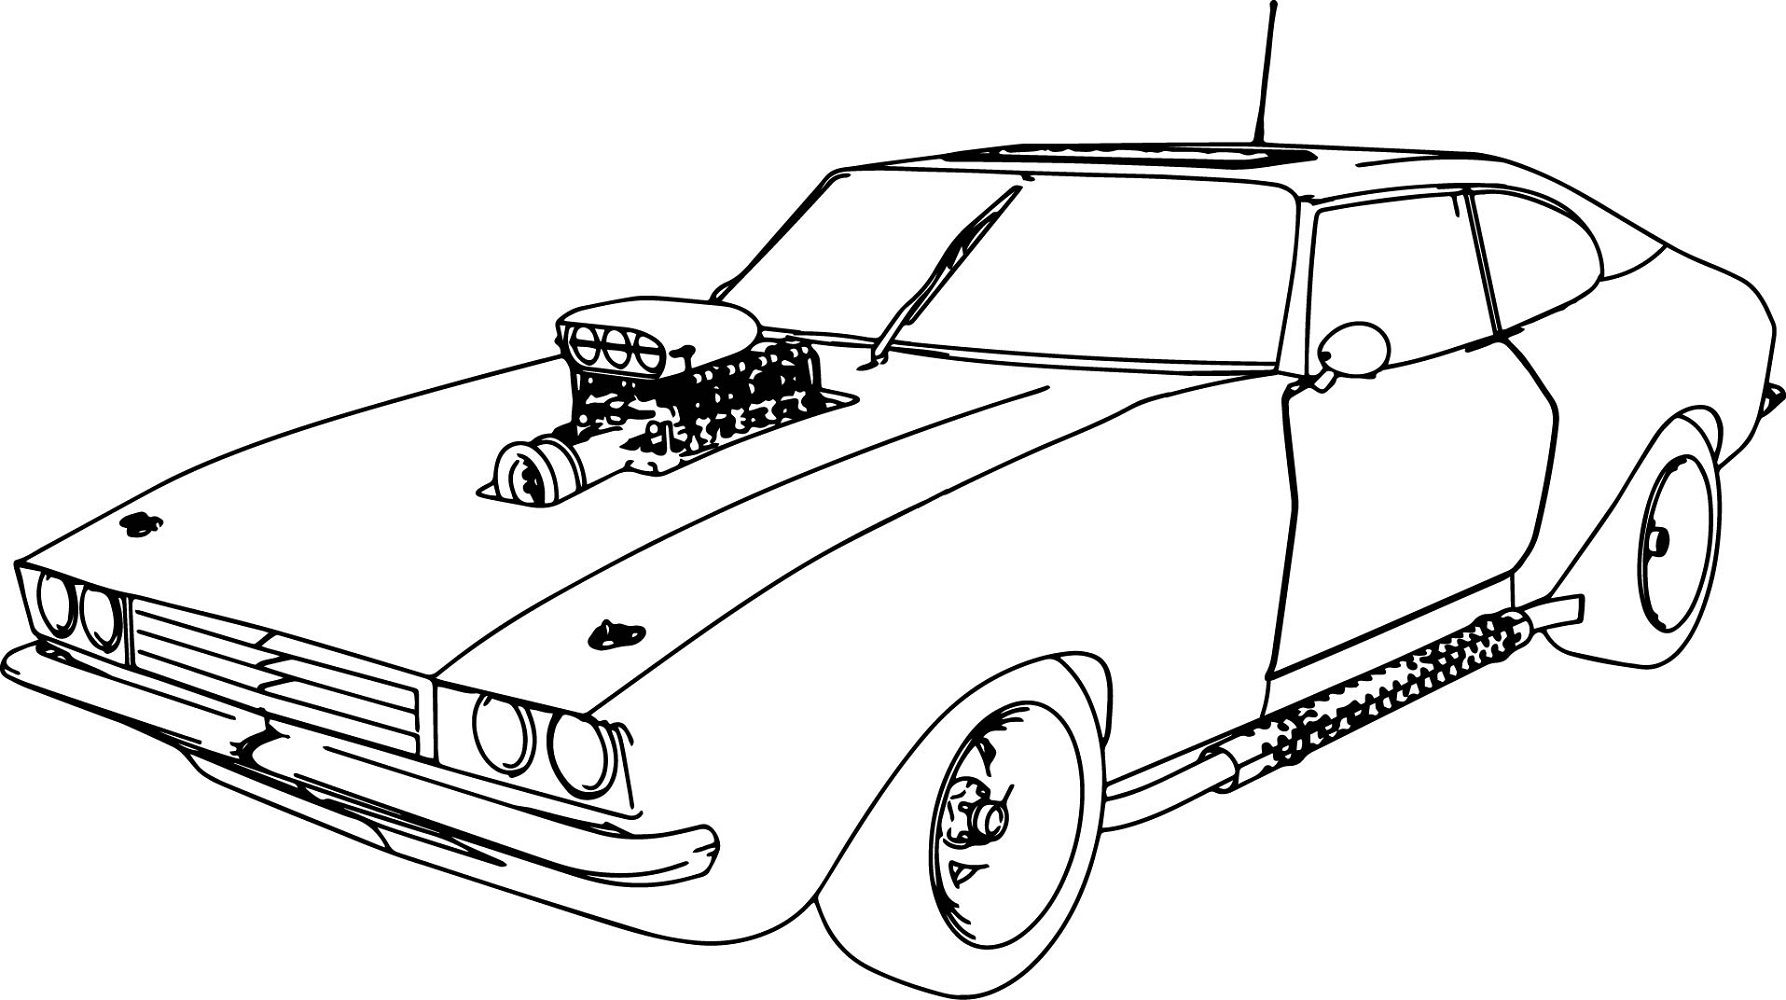 Fast And Furious Coloring Pages Muscle Car Educative Printable Race Car Coloring Pages Cars Coloring Pages Sports Coloring Pages